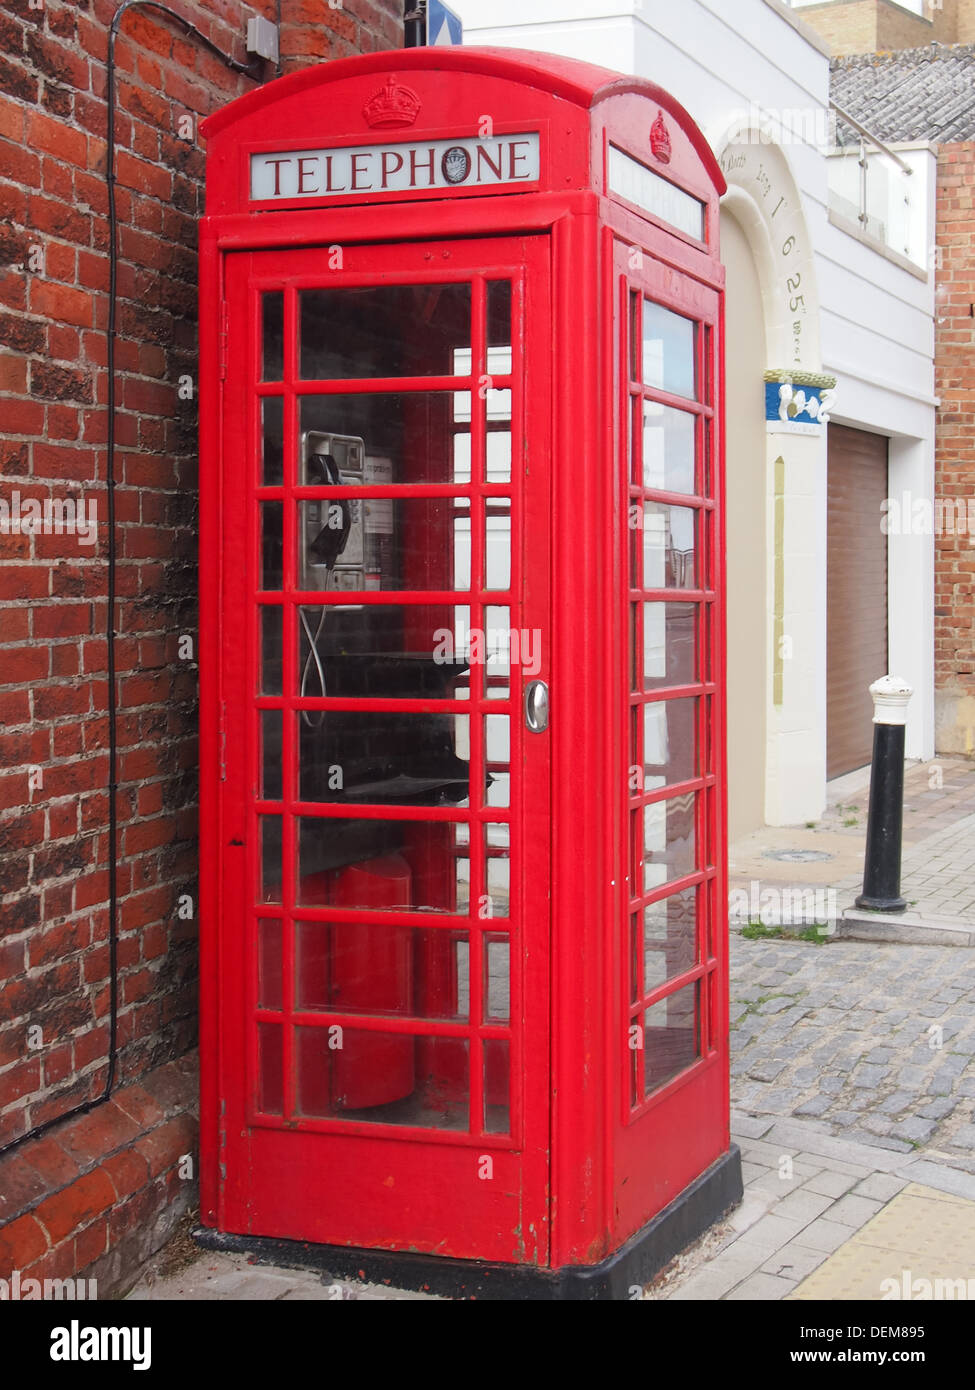 An old British red telephone box design K6 in Portsmouth, England - Stock Image